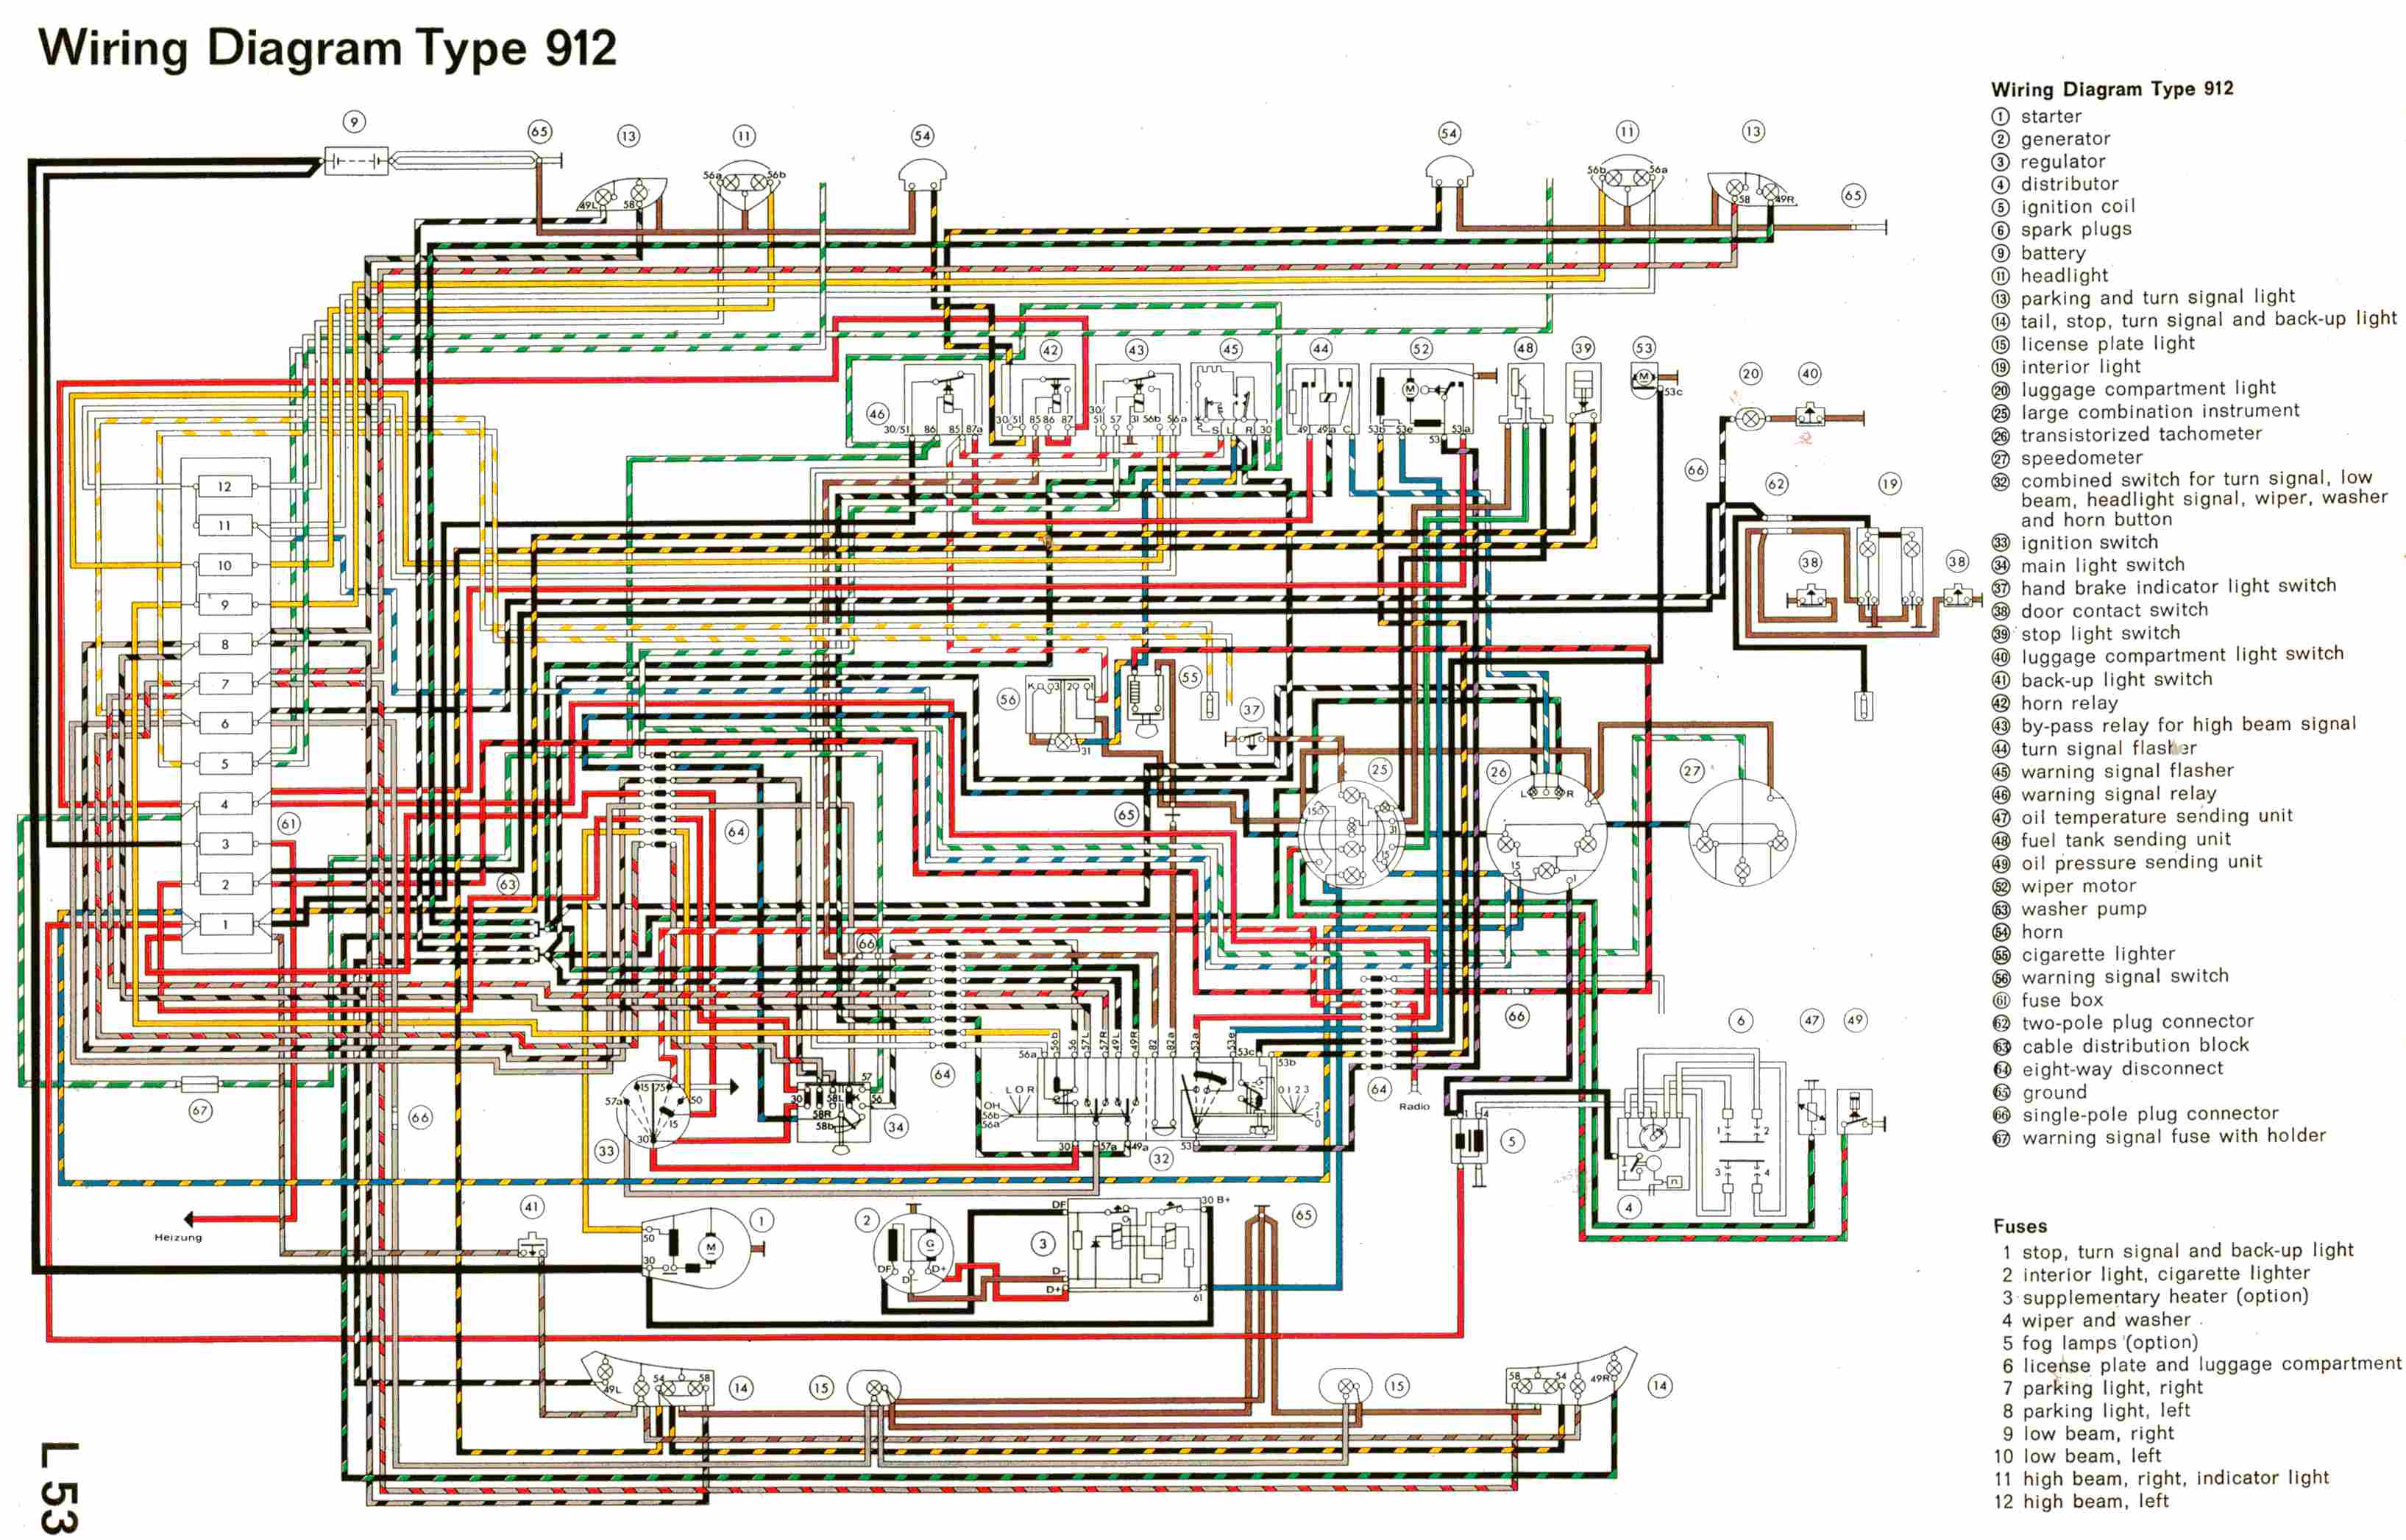 complete electrical wiring diagram of porsche type 912?resized665%2C4266ssld1 1981 porsche 928 wiring diagram efcaviation com 1980 porsche 928 wiring diagram at virtualis.co